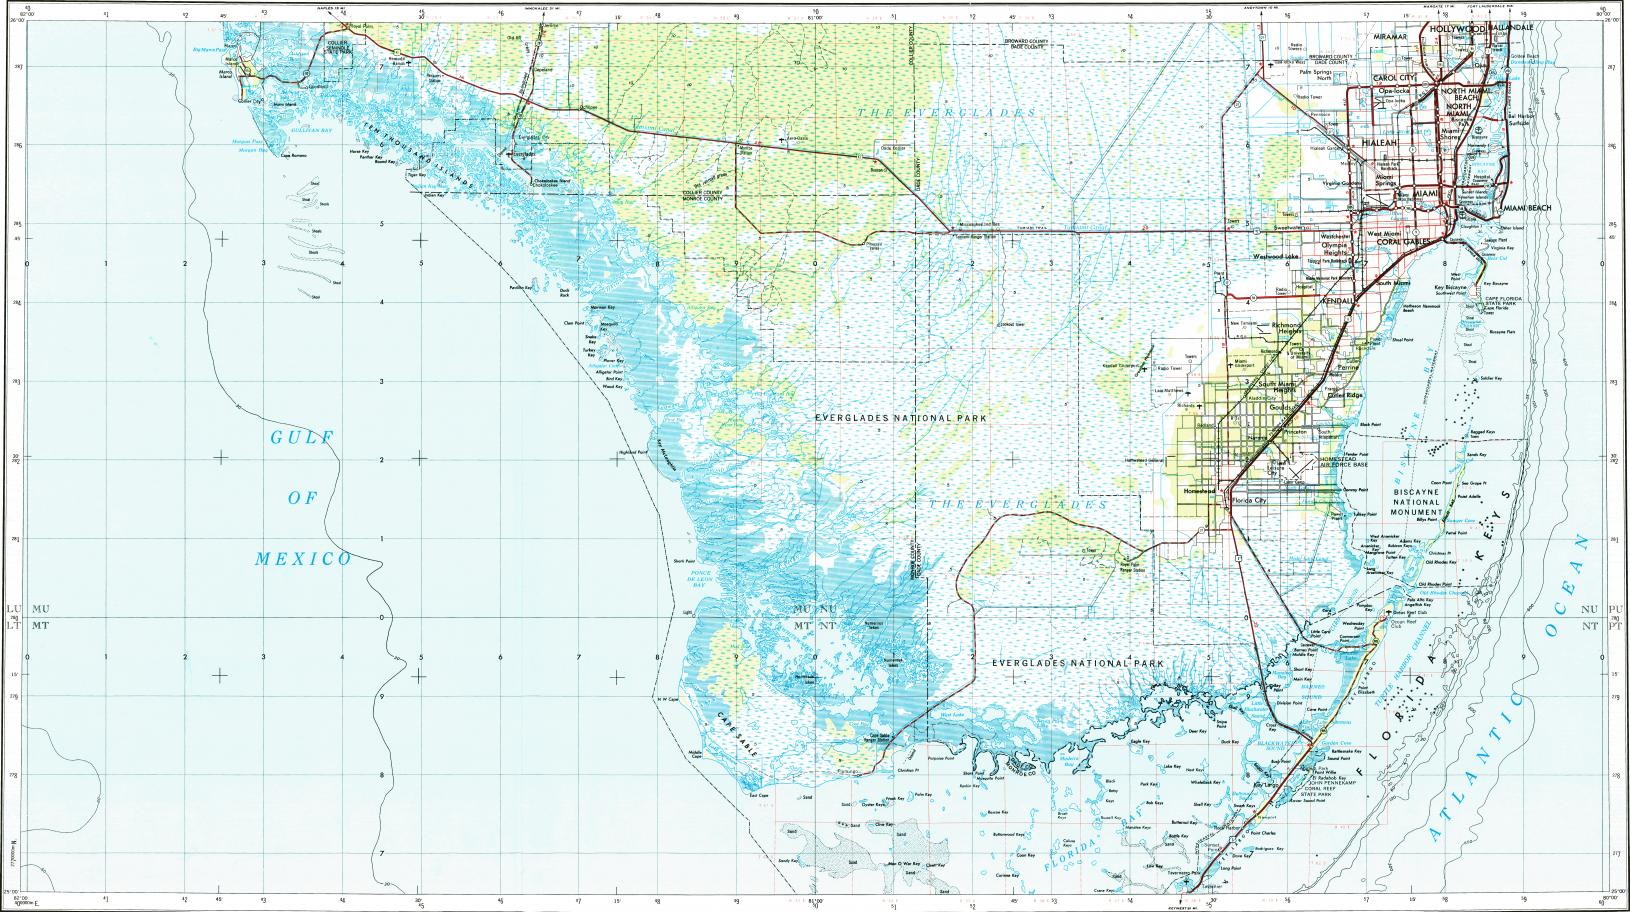 Download topographic map in area of Miami Hialeah Kendall